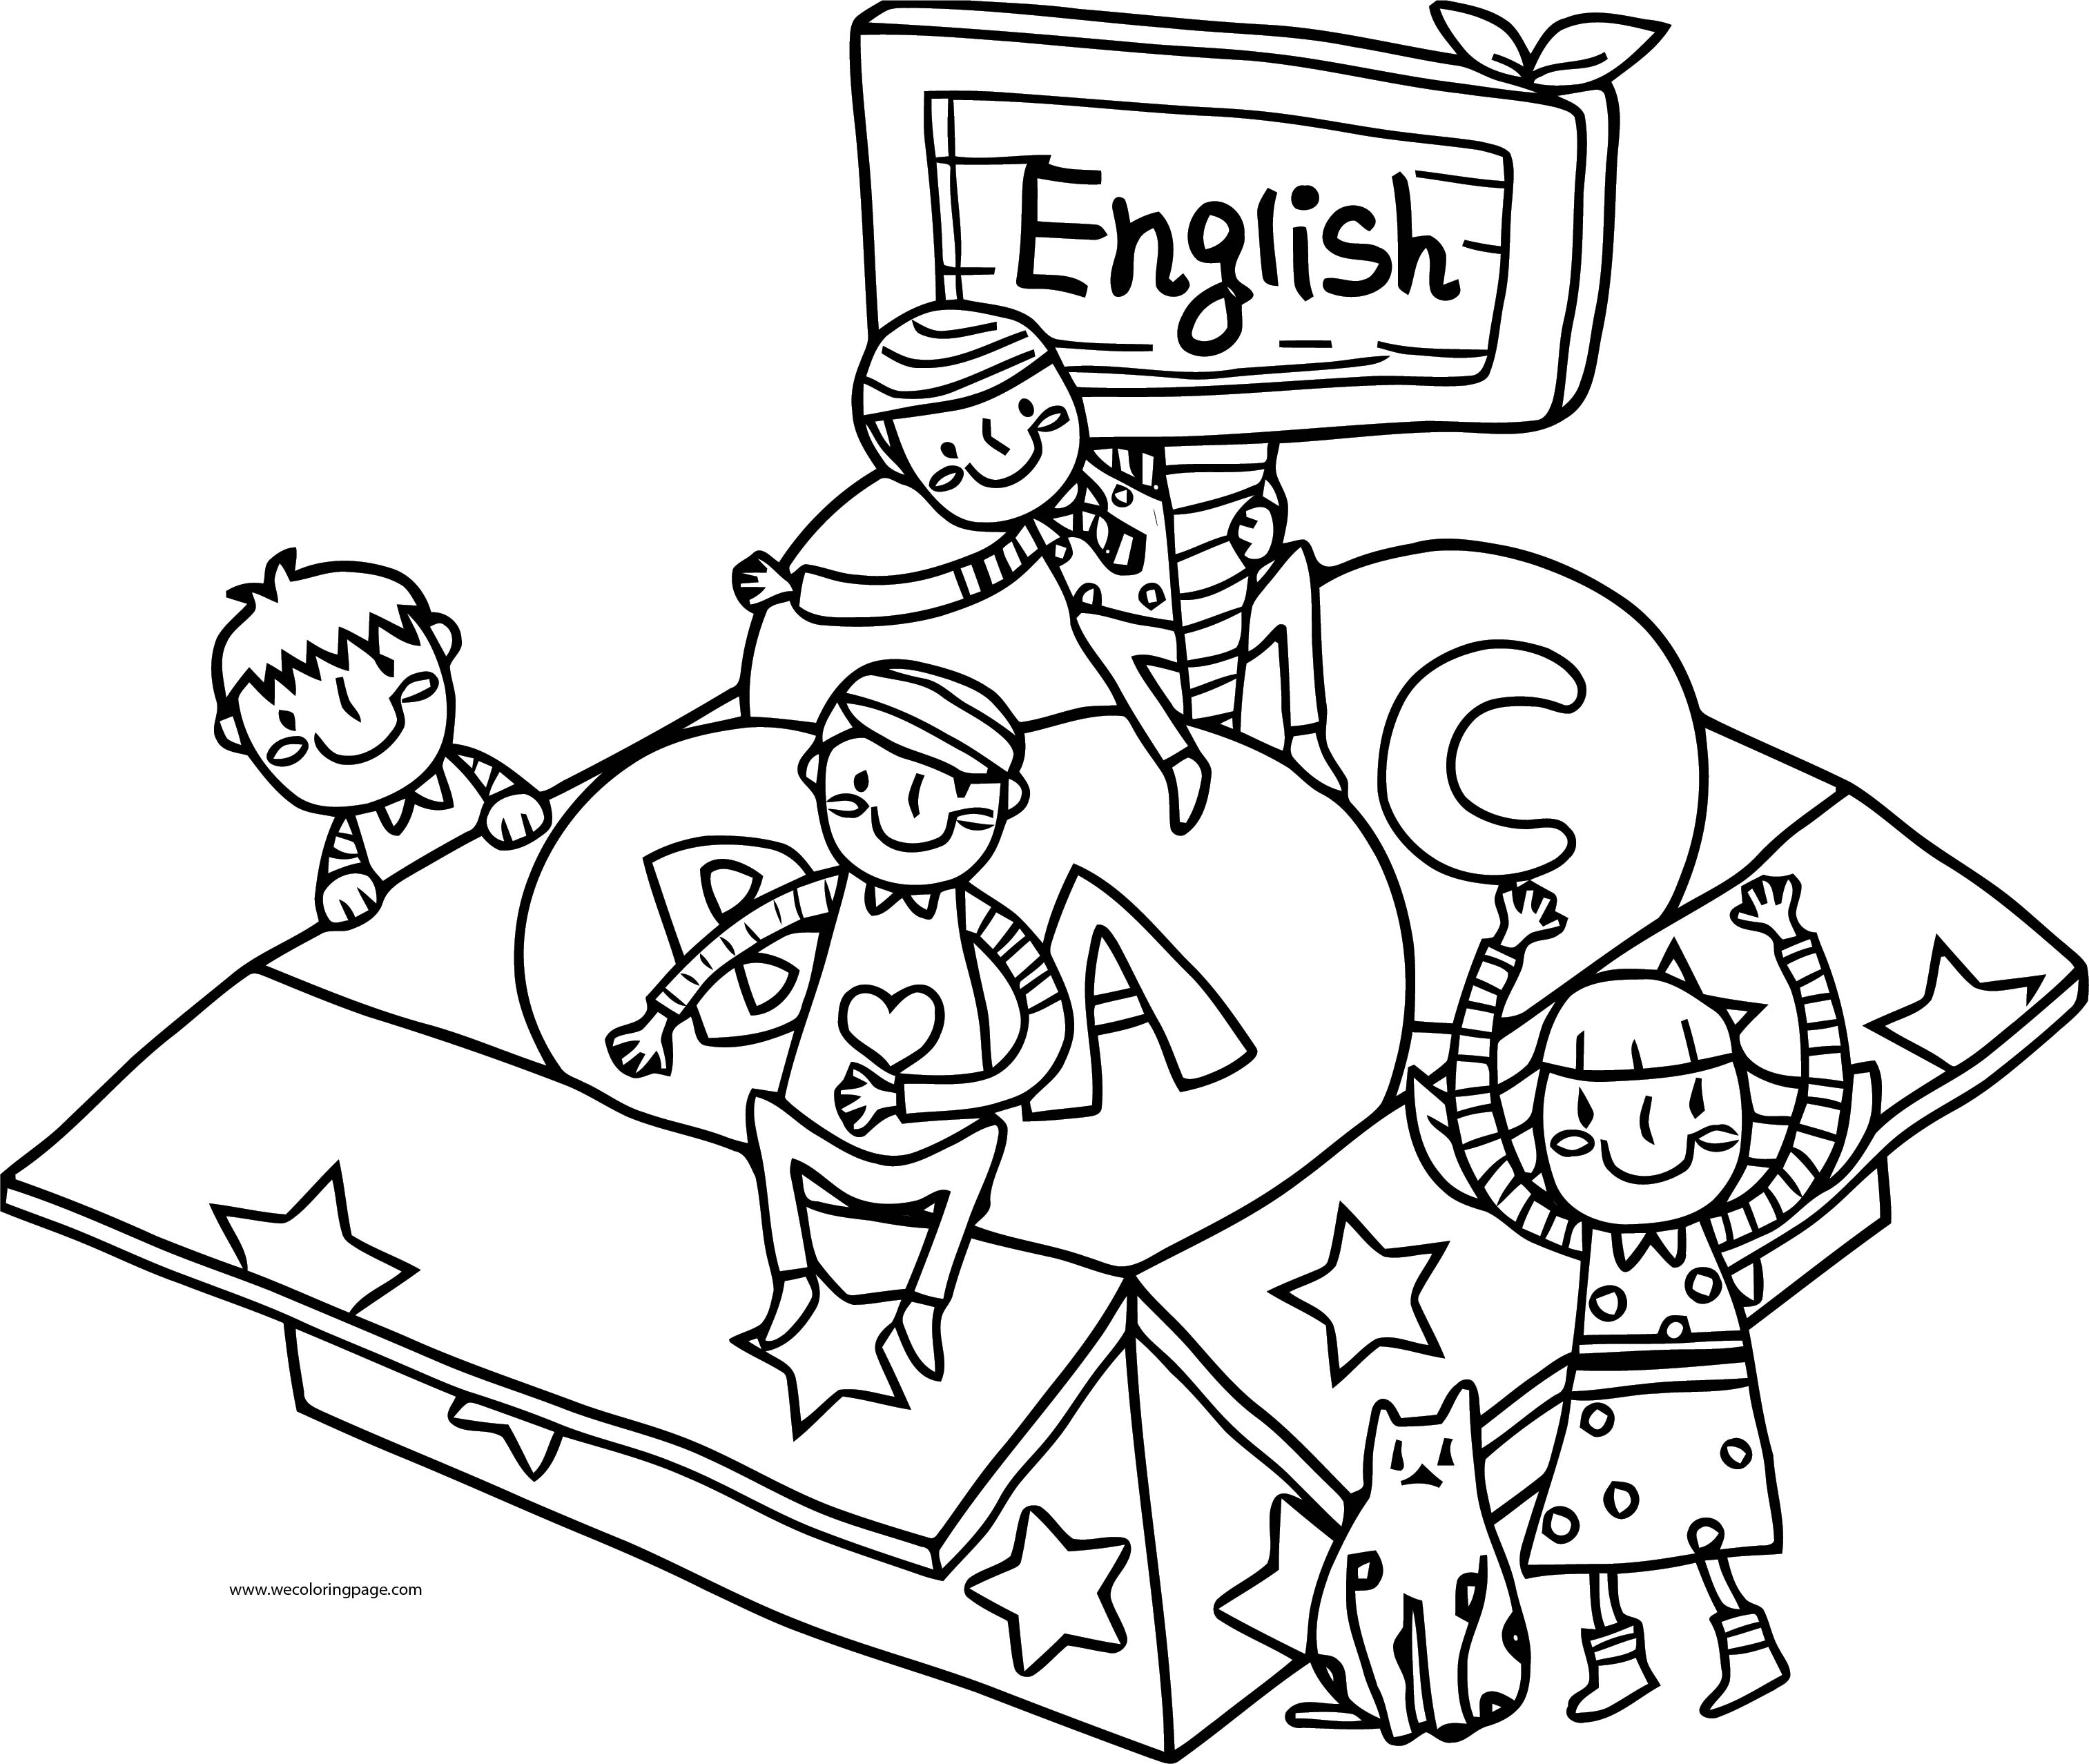 Esl coloring pages ~ English Teacher We Coloring Page 060   Wecoloringpage.com